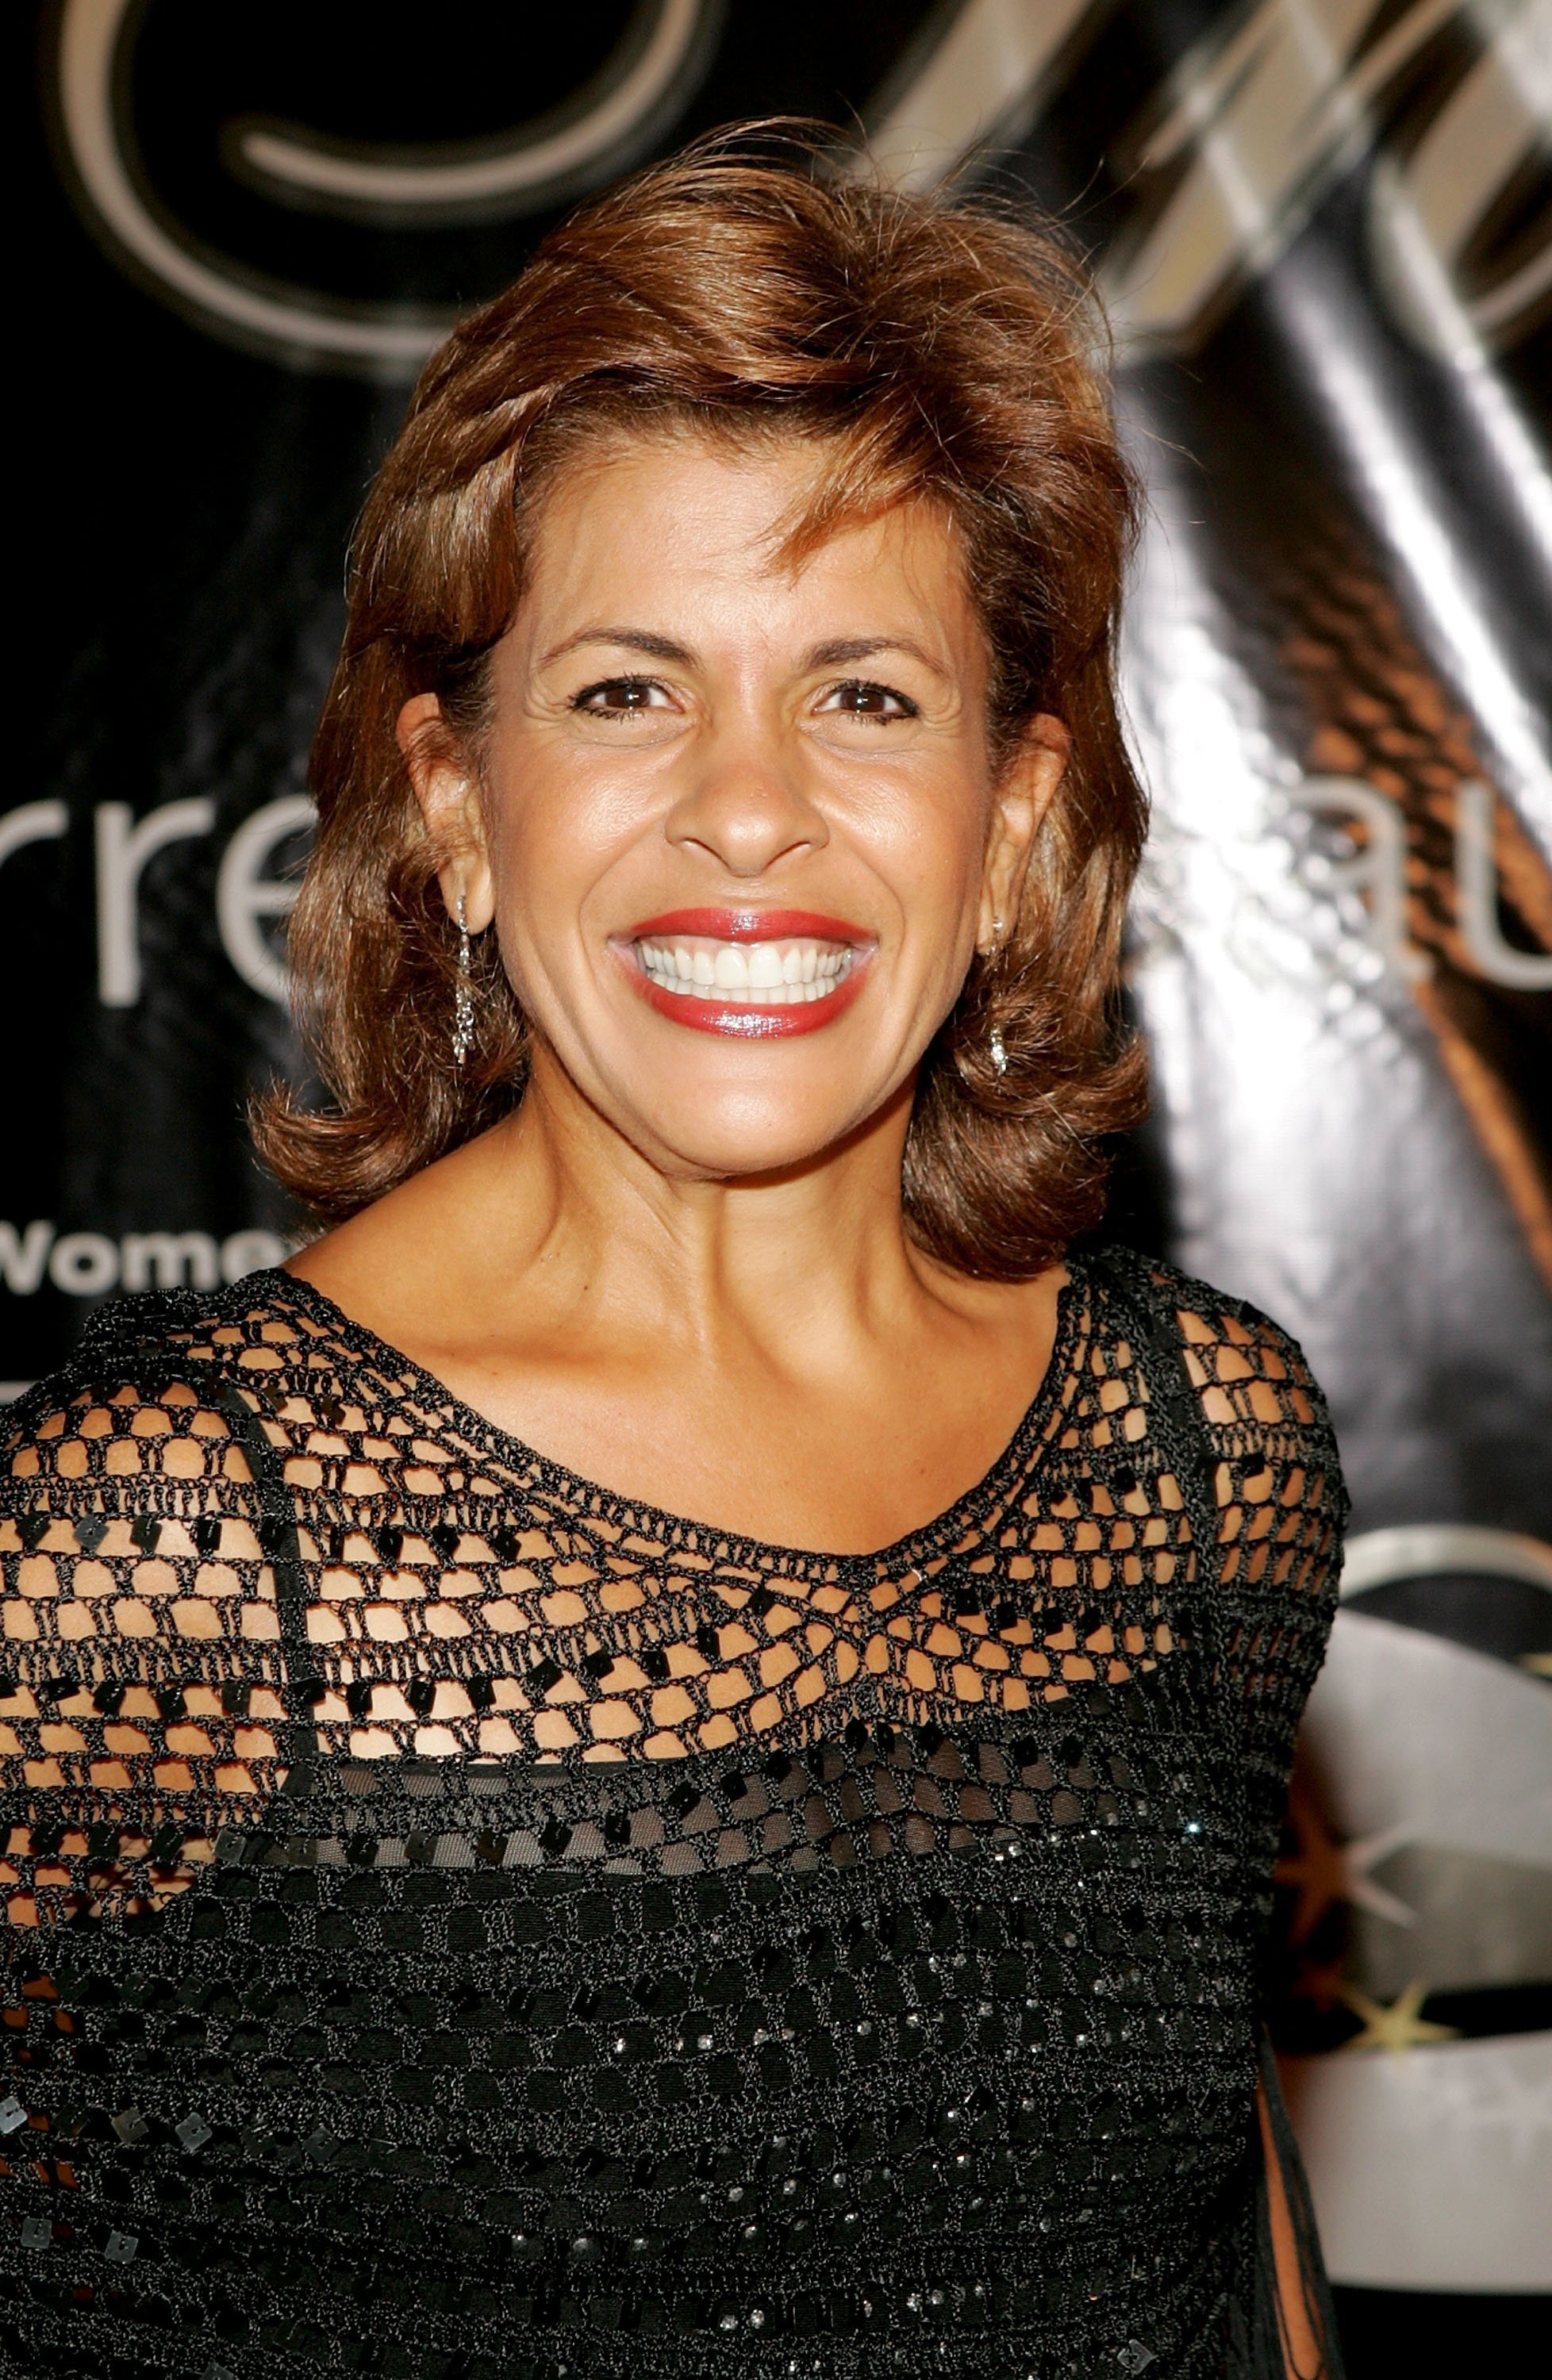 Hoda Kotb attends the Gracie Allen Awards Gala in New York City on June 22, 2005 | Photo: Getty Images